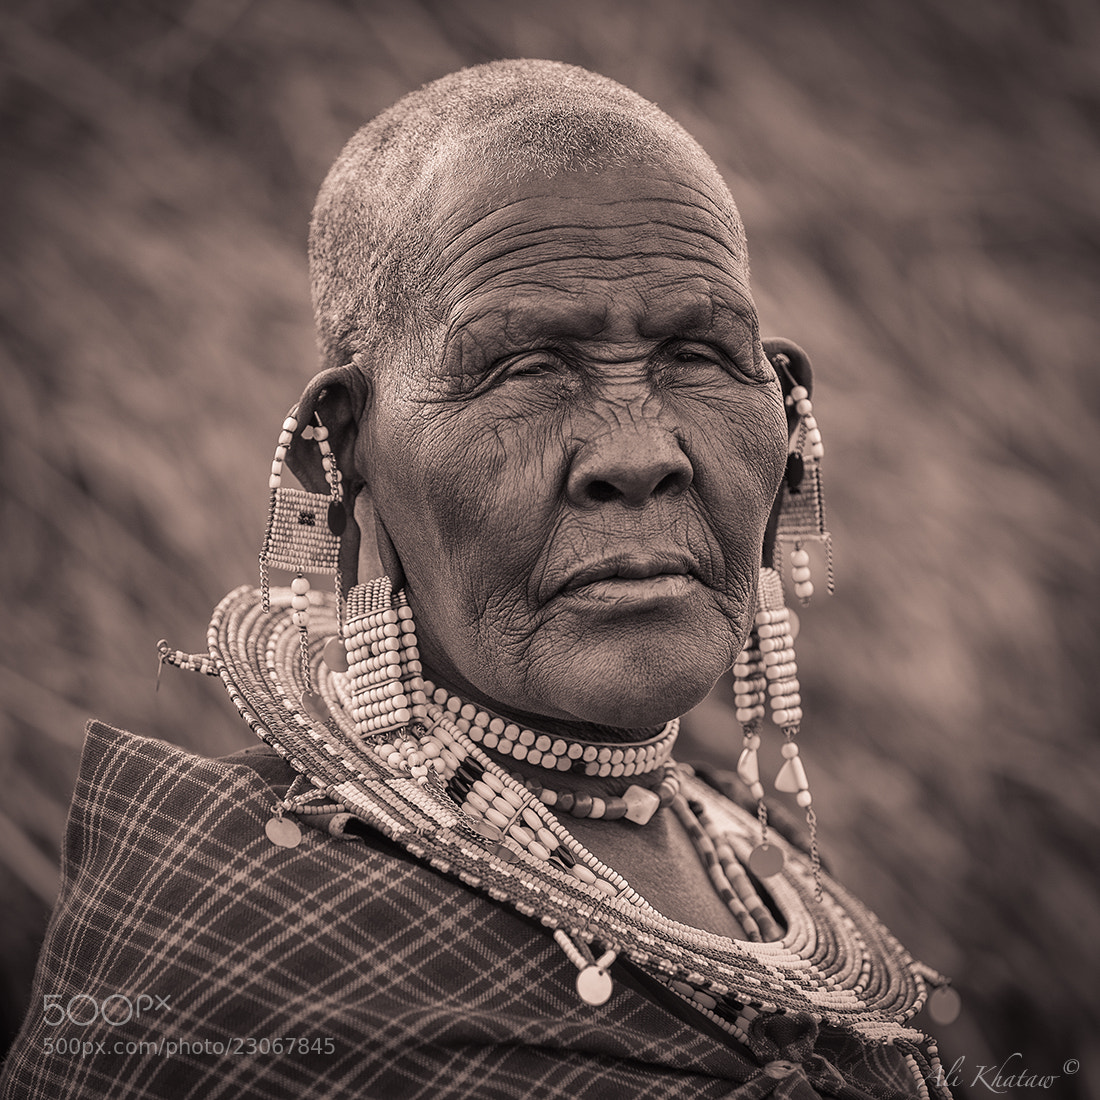 Photograph Masai Grandma by Ali Khataw on 500px